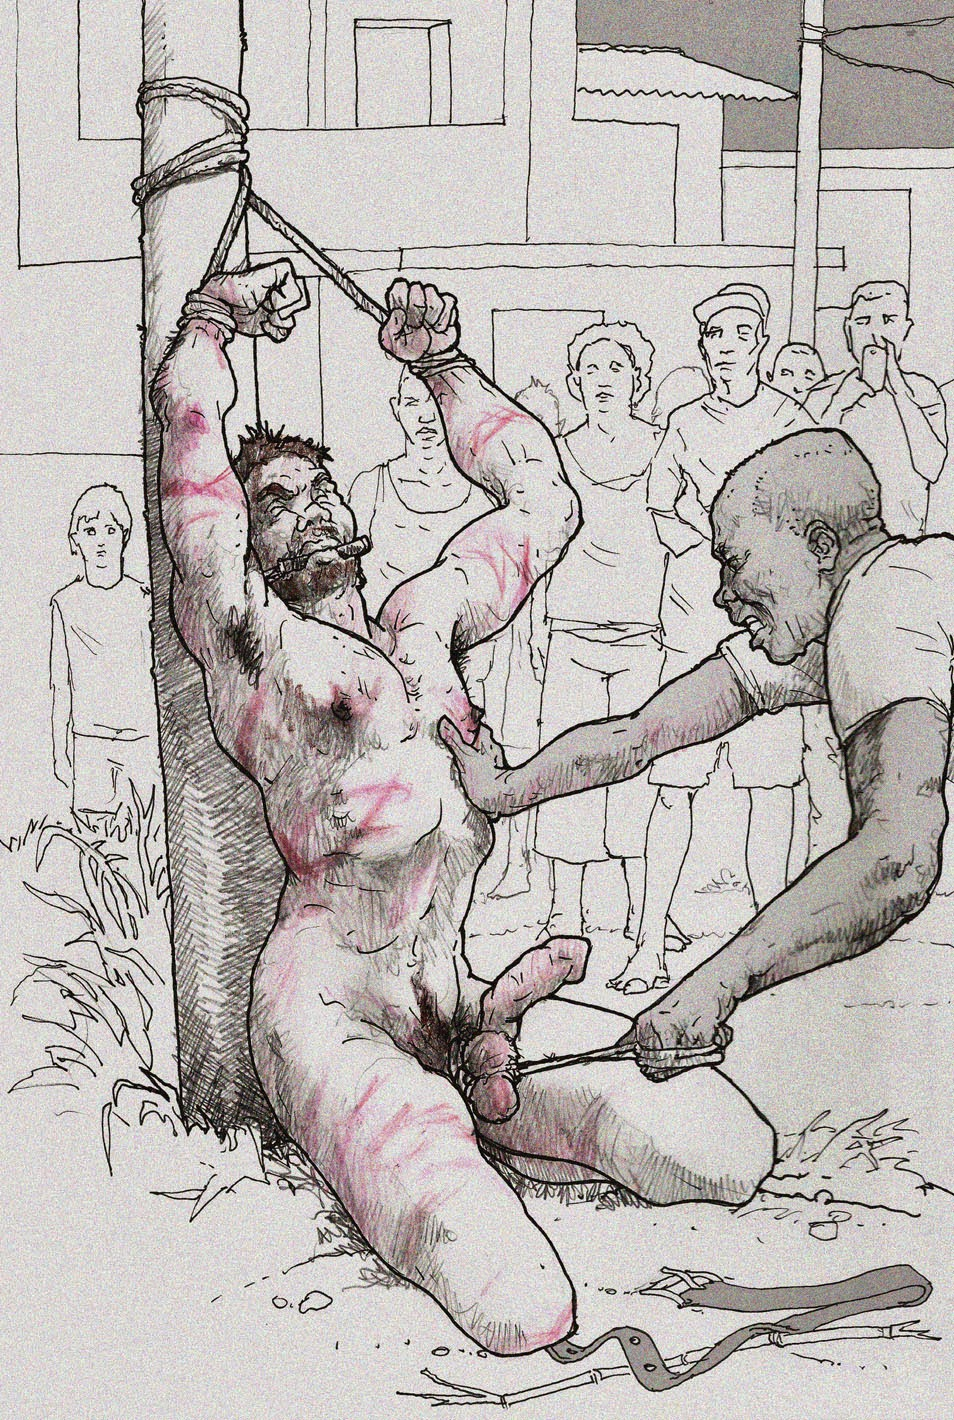 Difficult gay torture cartoon